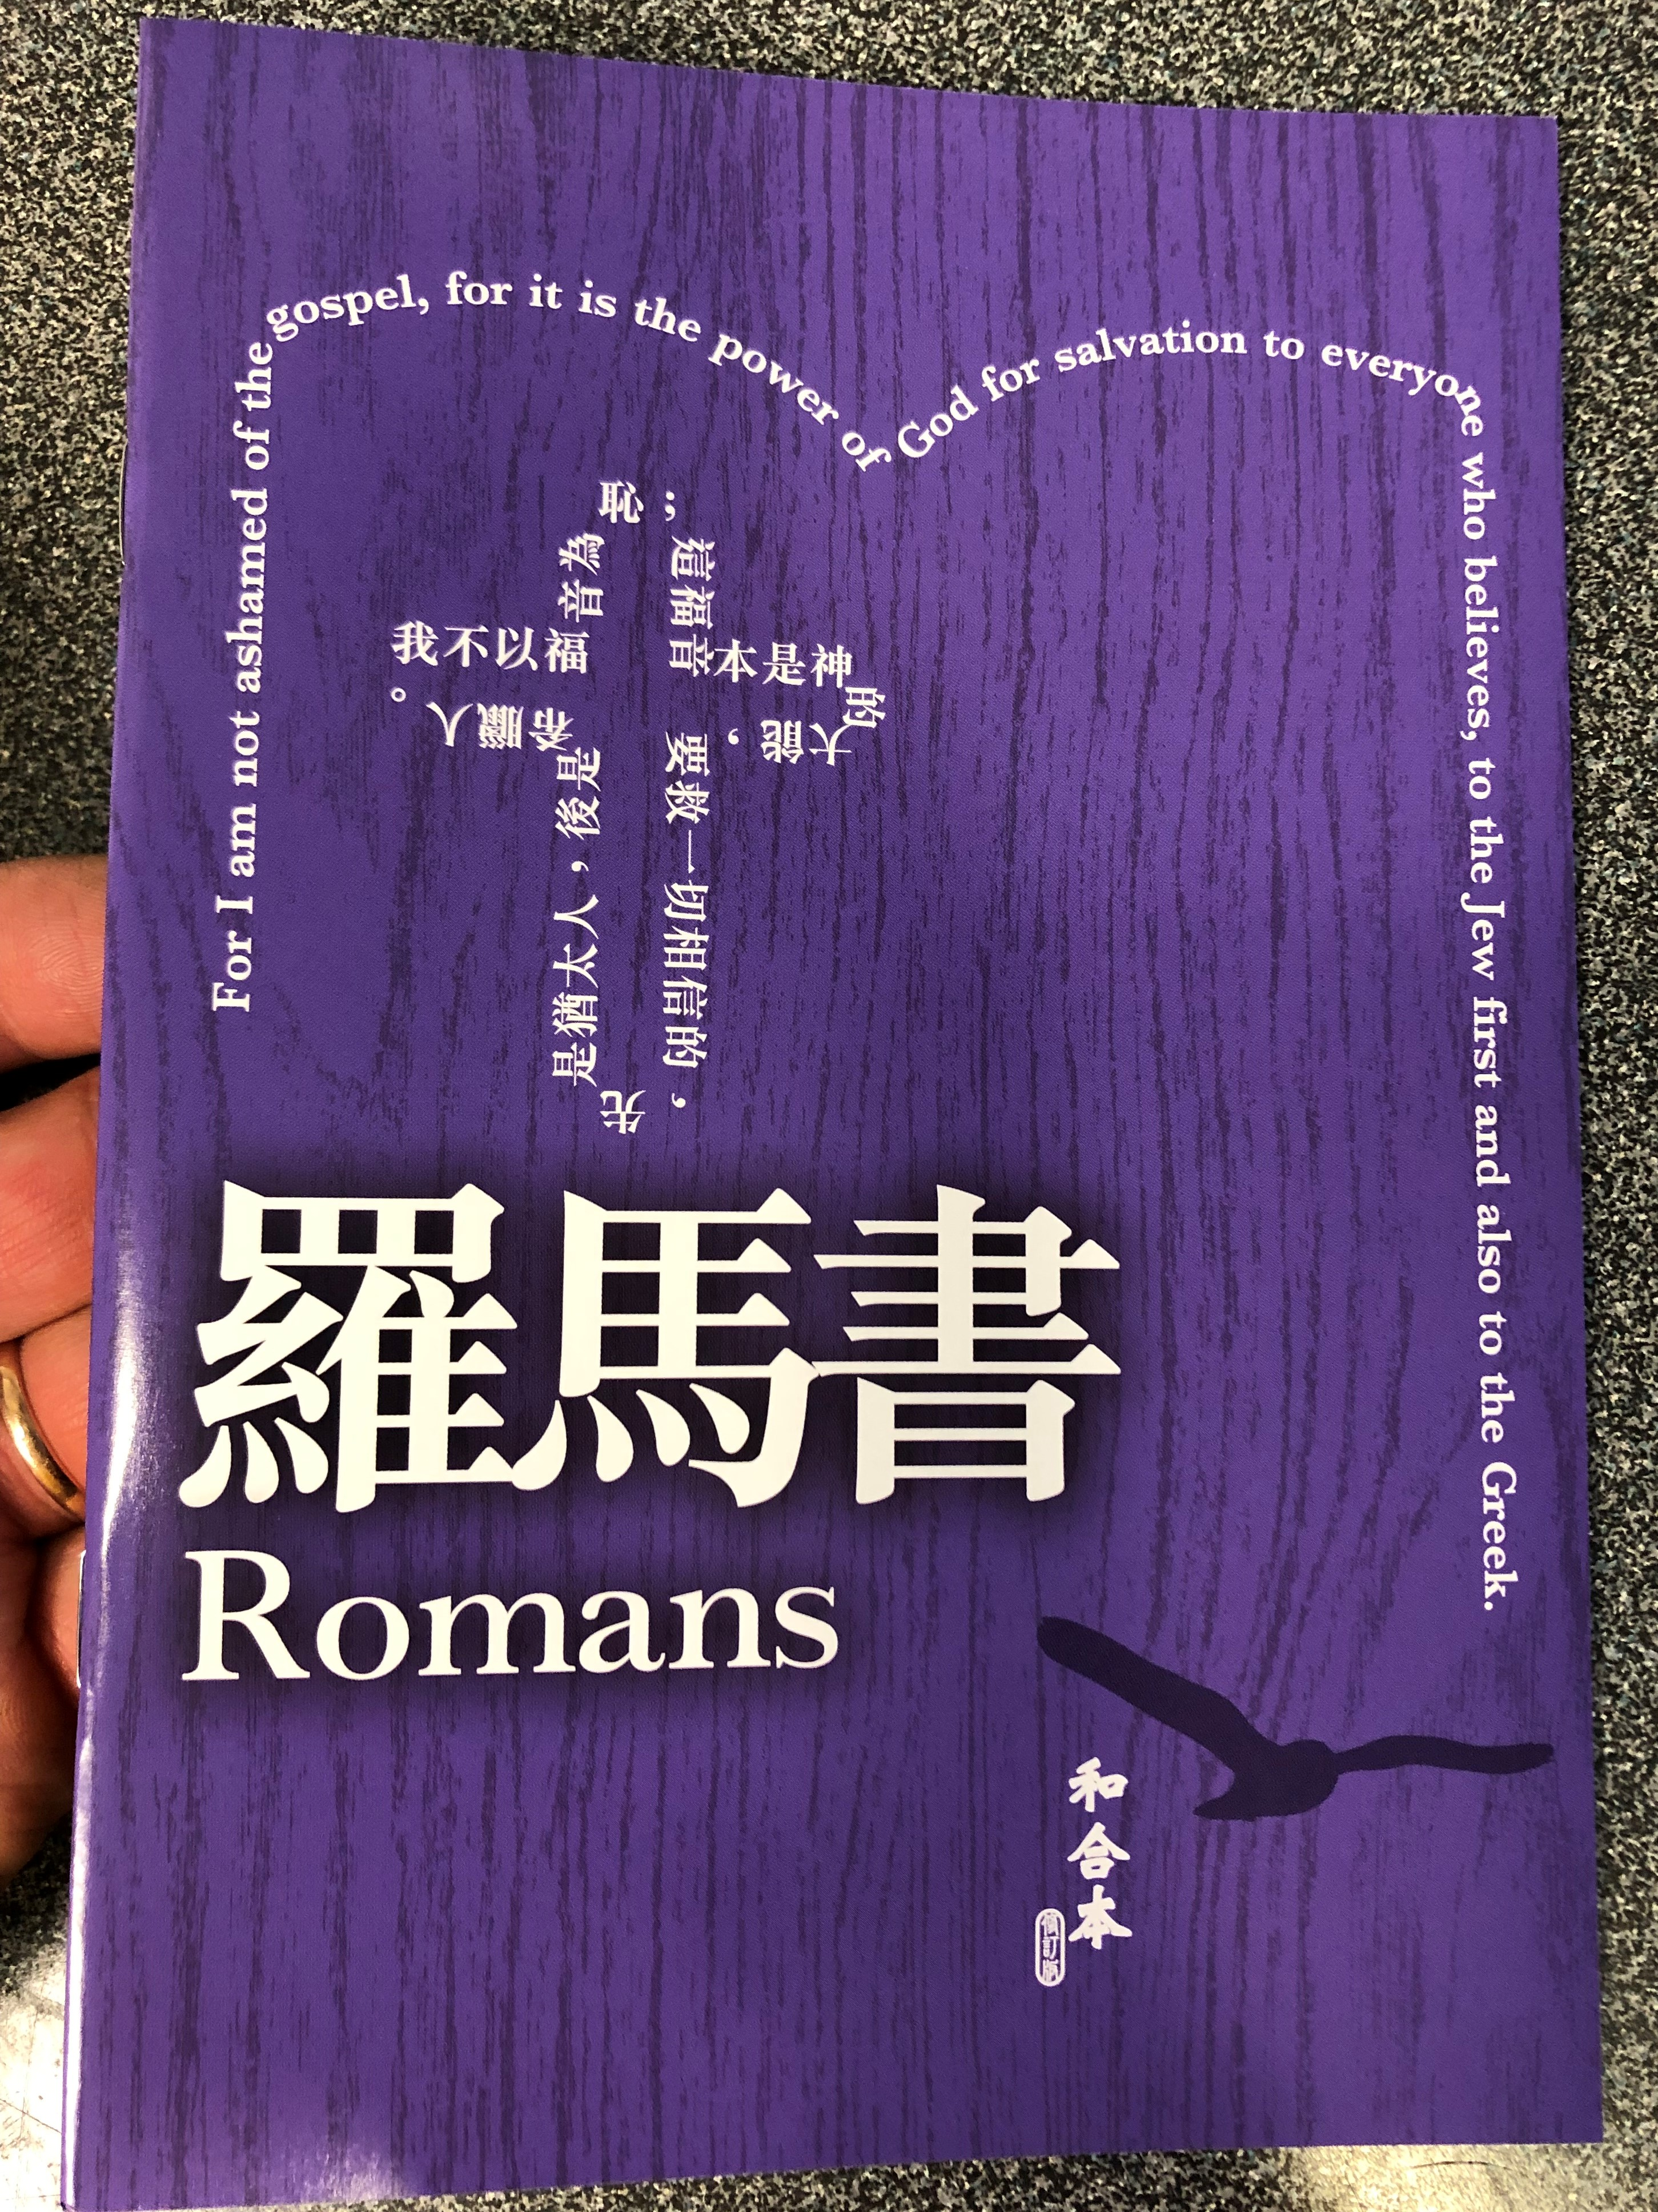 -romans-in-chinese-language-super-large-print-edition-revised-chinese-union-version-cu2010-hkbs-2-.jpg